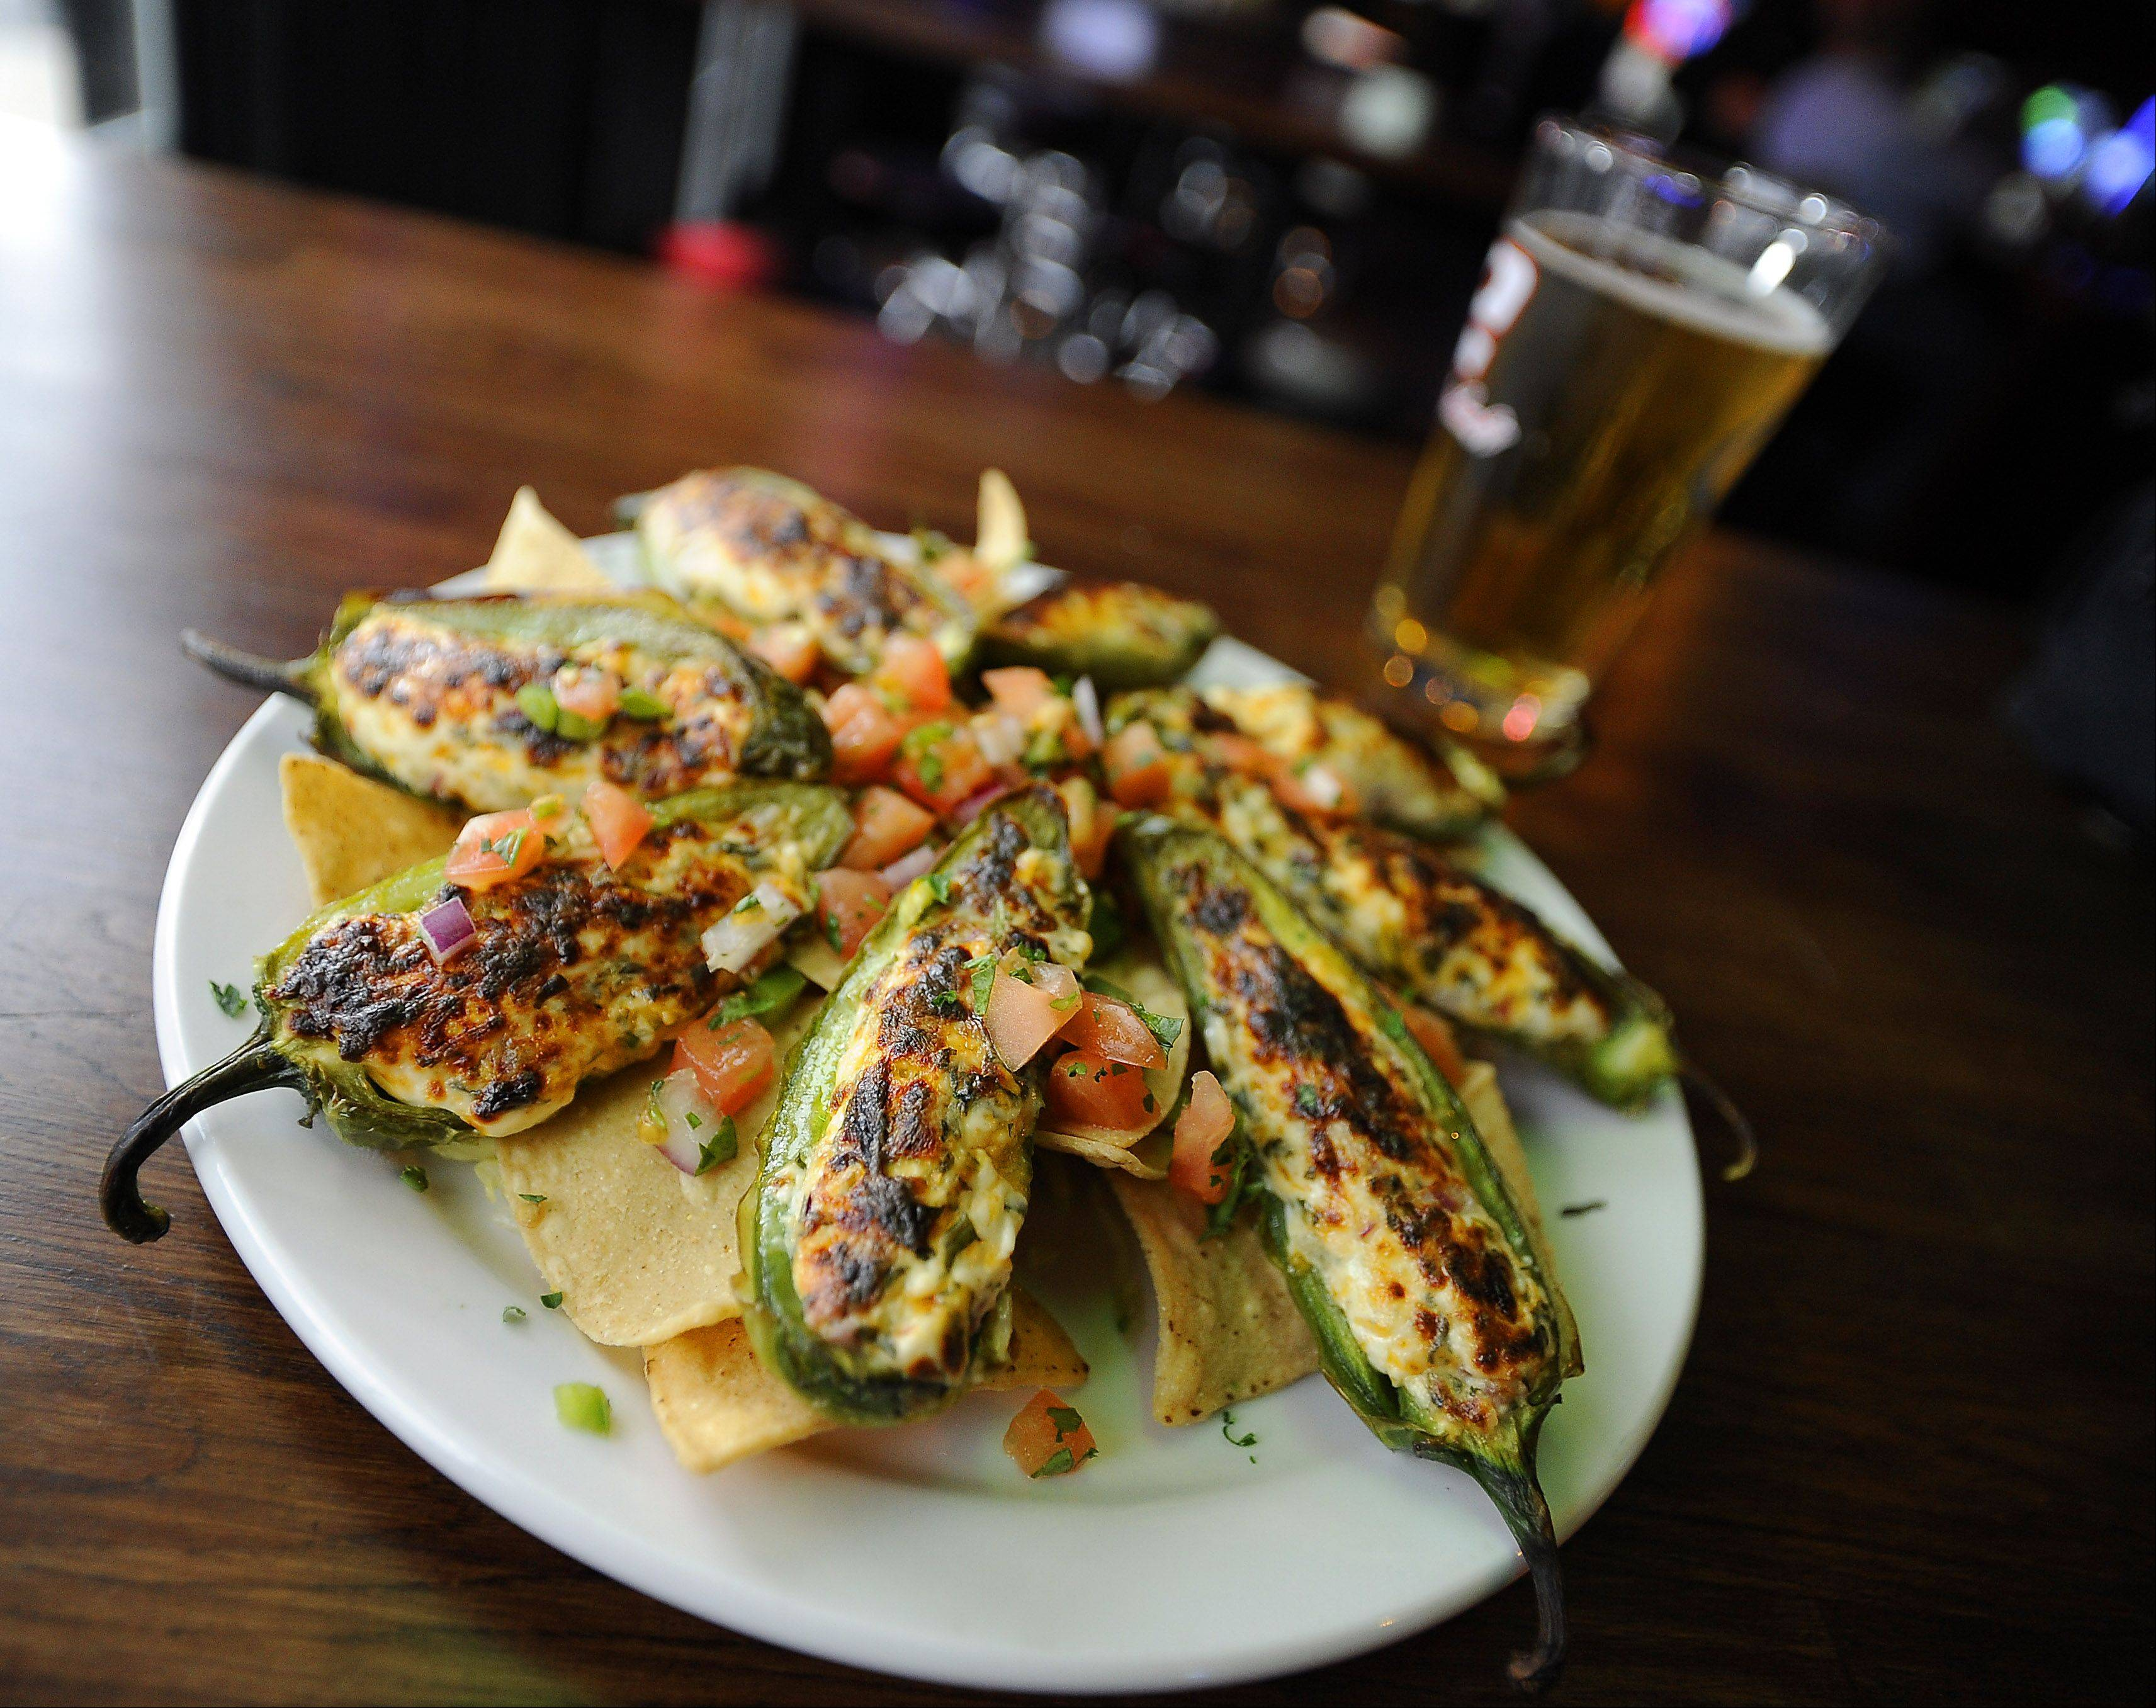 Alley 64's grilled poppers pack plenty of heat. Grilled jalape�os are stuffed with cheese and served with diced tomatoes and onions over tortilla chips.